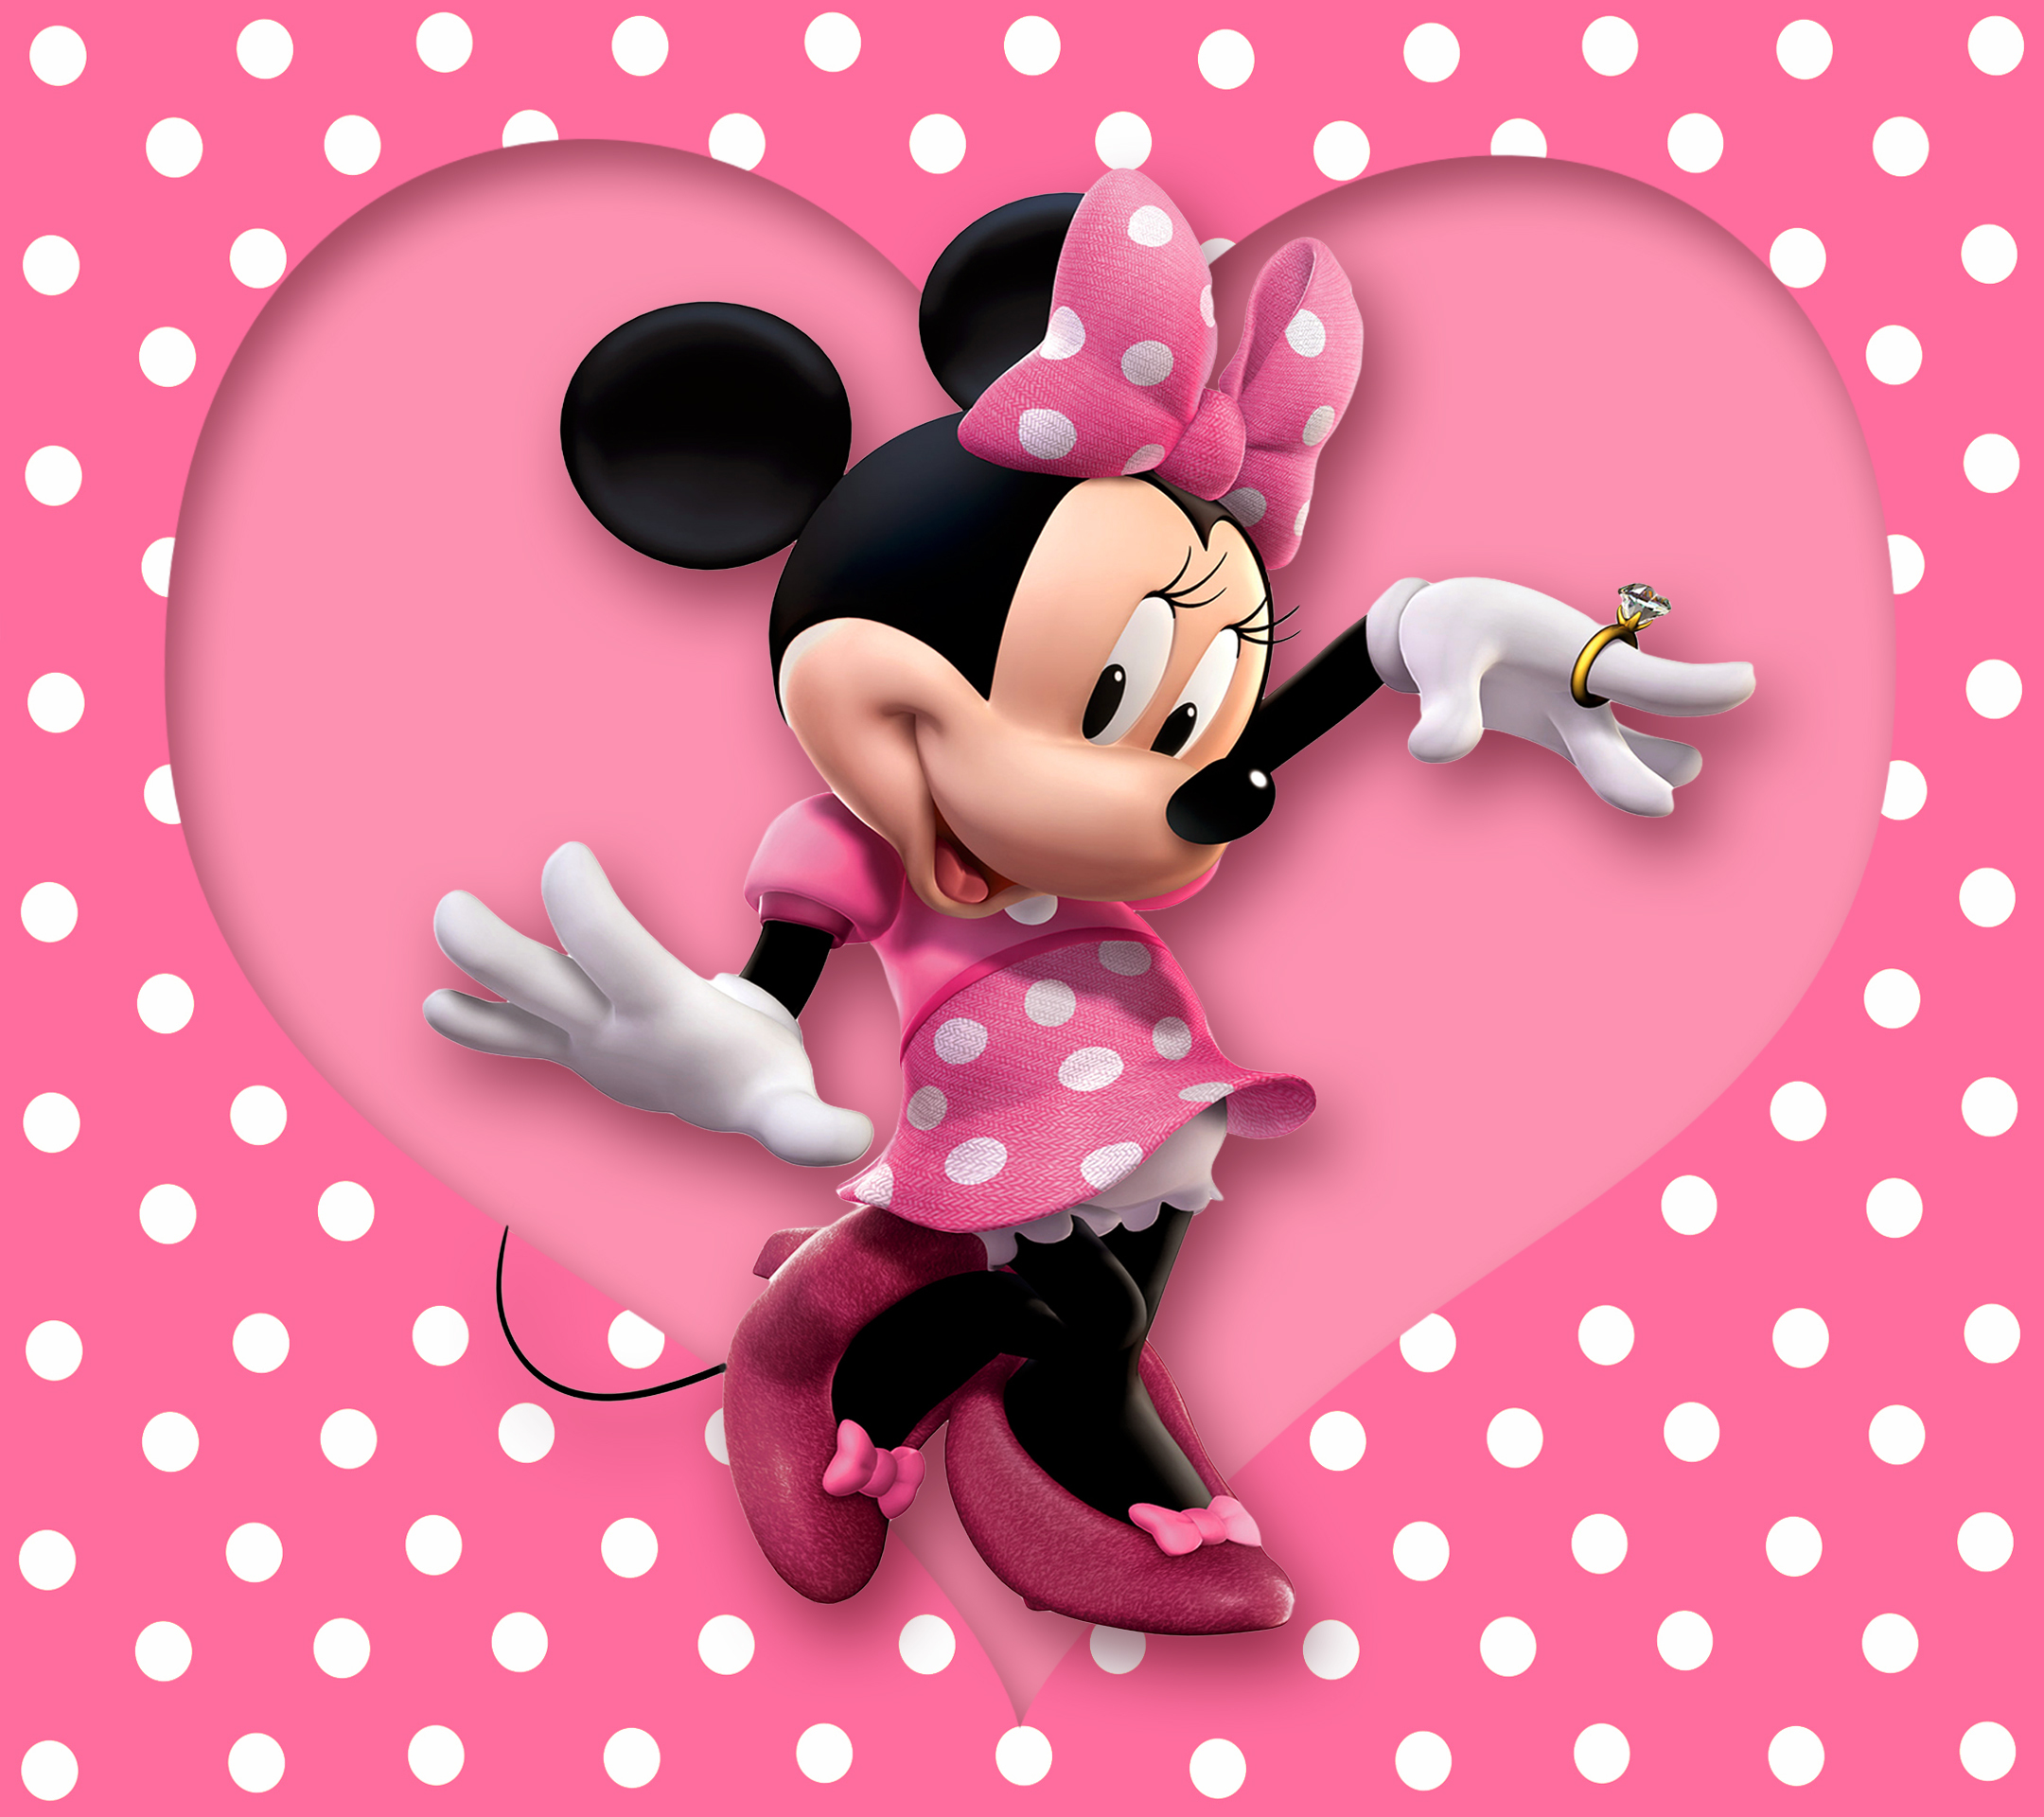 cute-purple-minnie-mouse-cartoon-hd-wallpaper-minnie-mouse-wallpaper ...